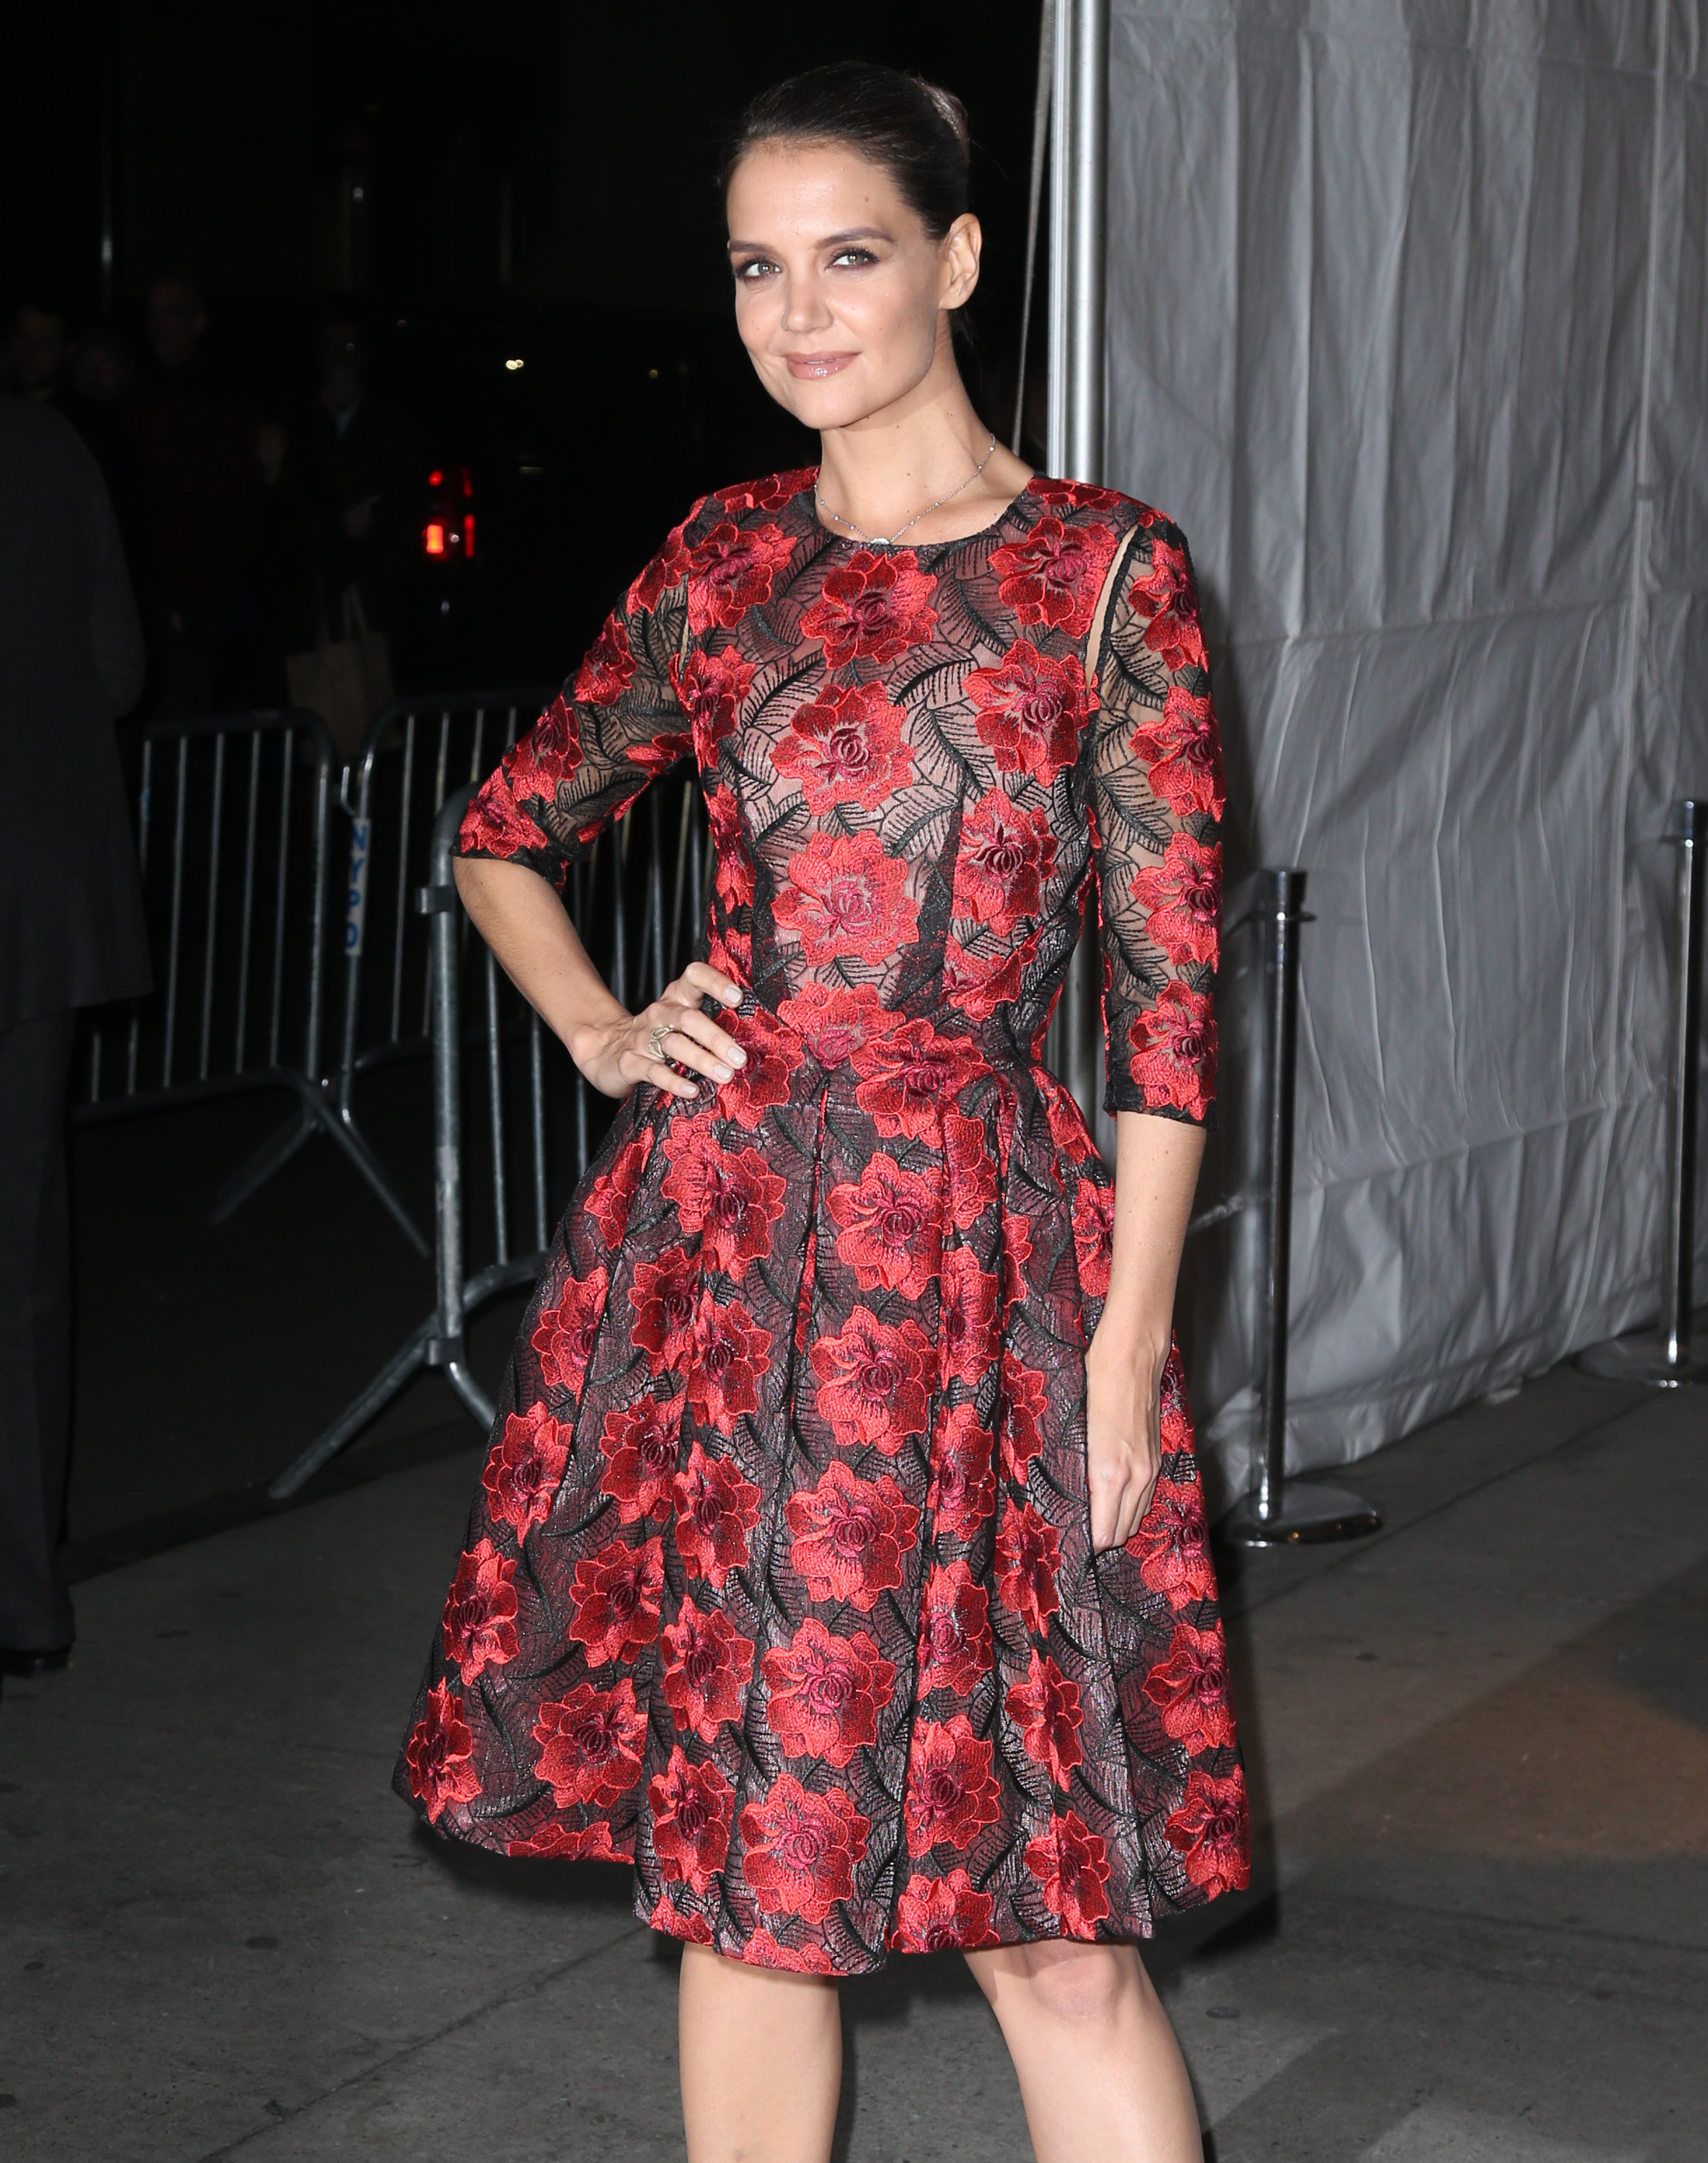 Katie Holmes Denies Jamie Foxx Marriage: Katie and Jamie Headed Towards Break-Up?